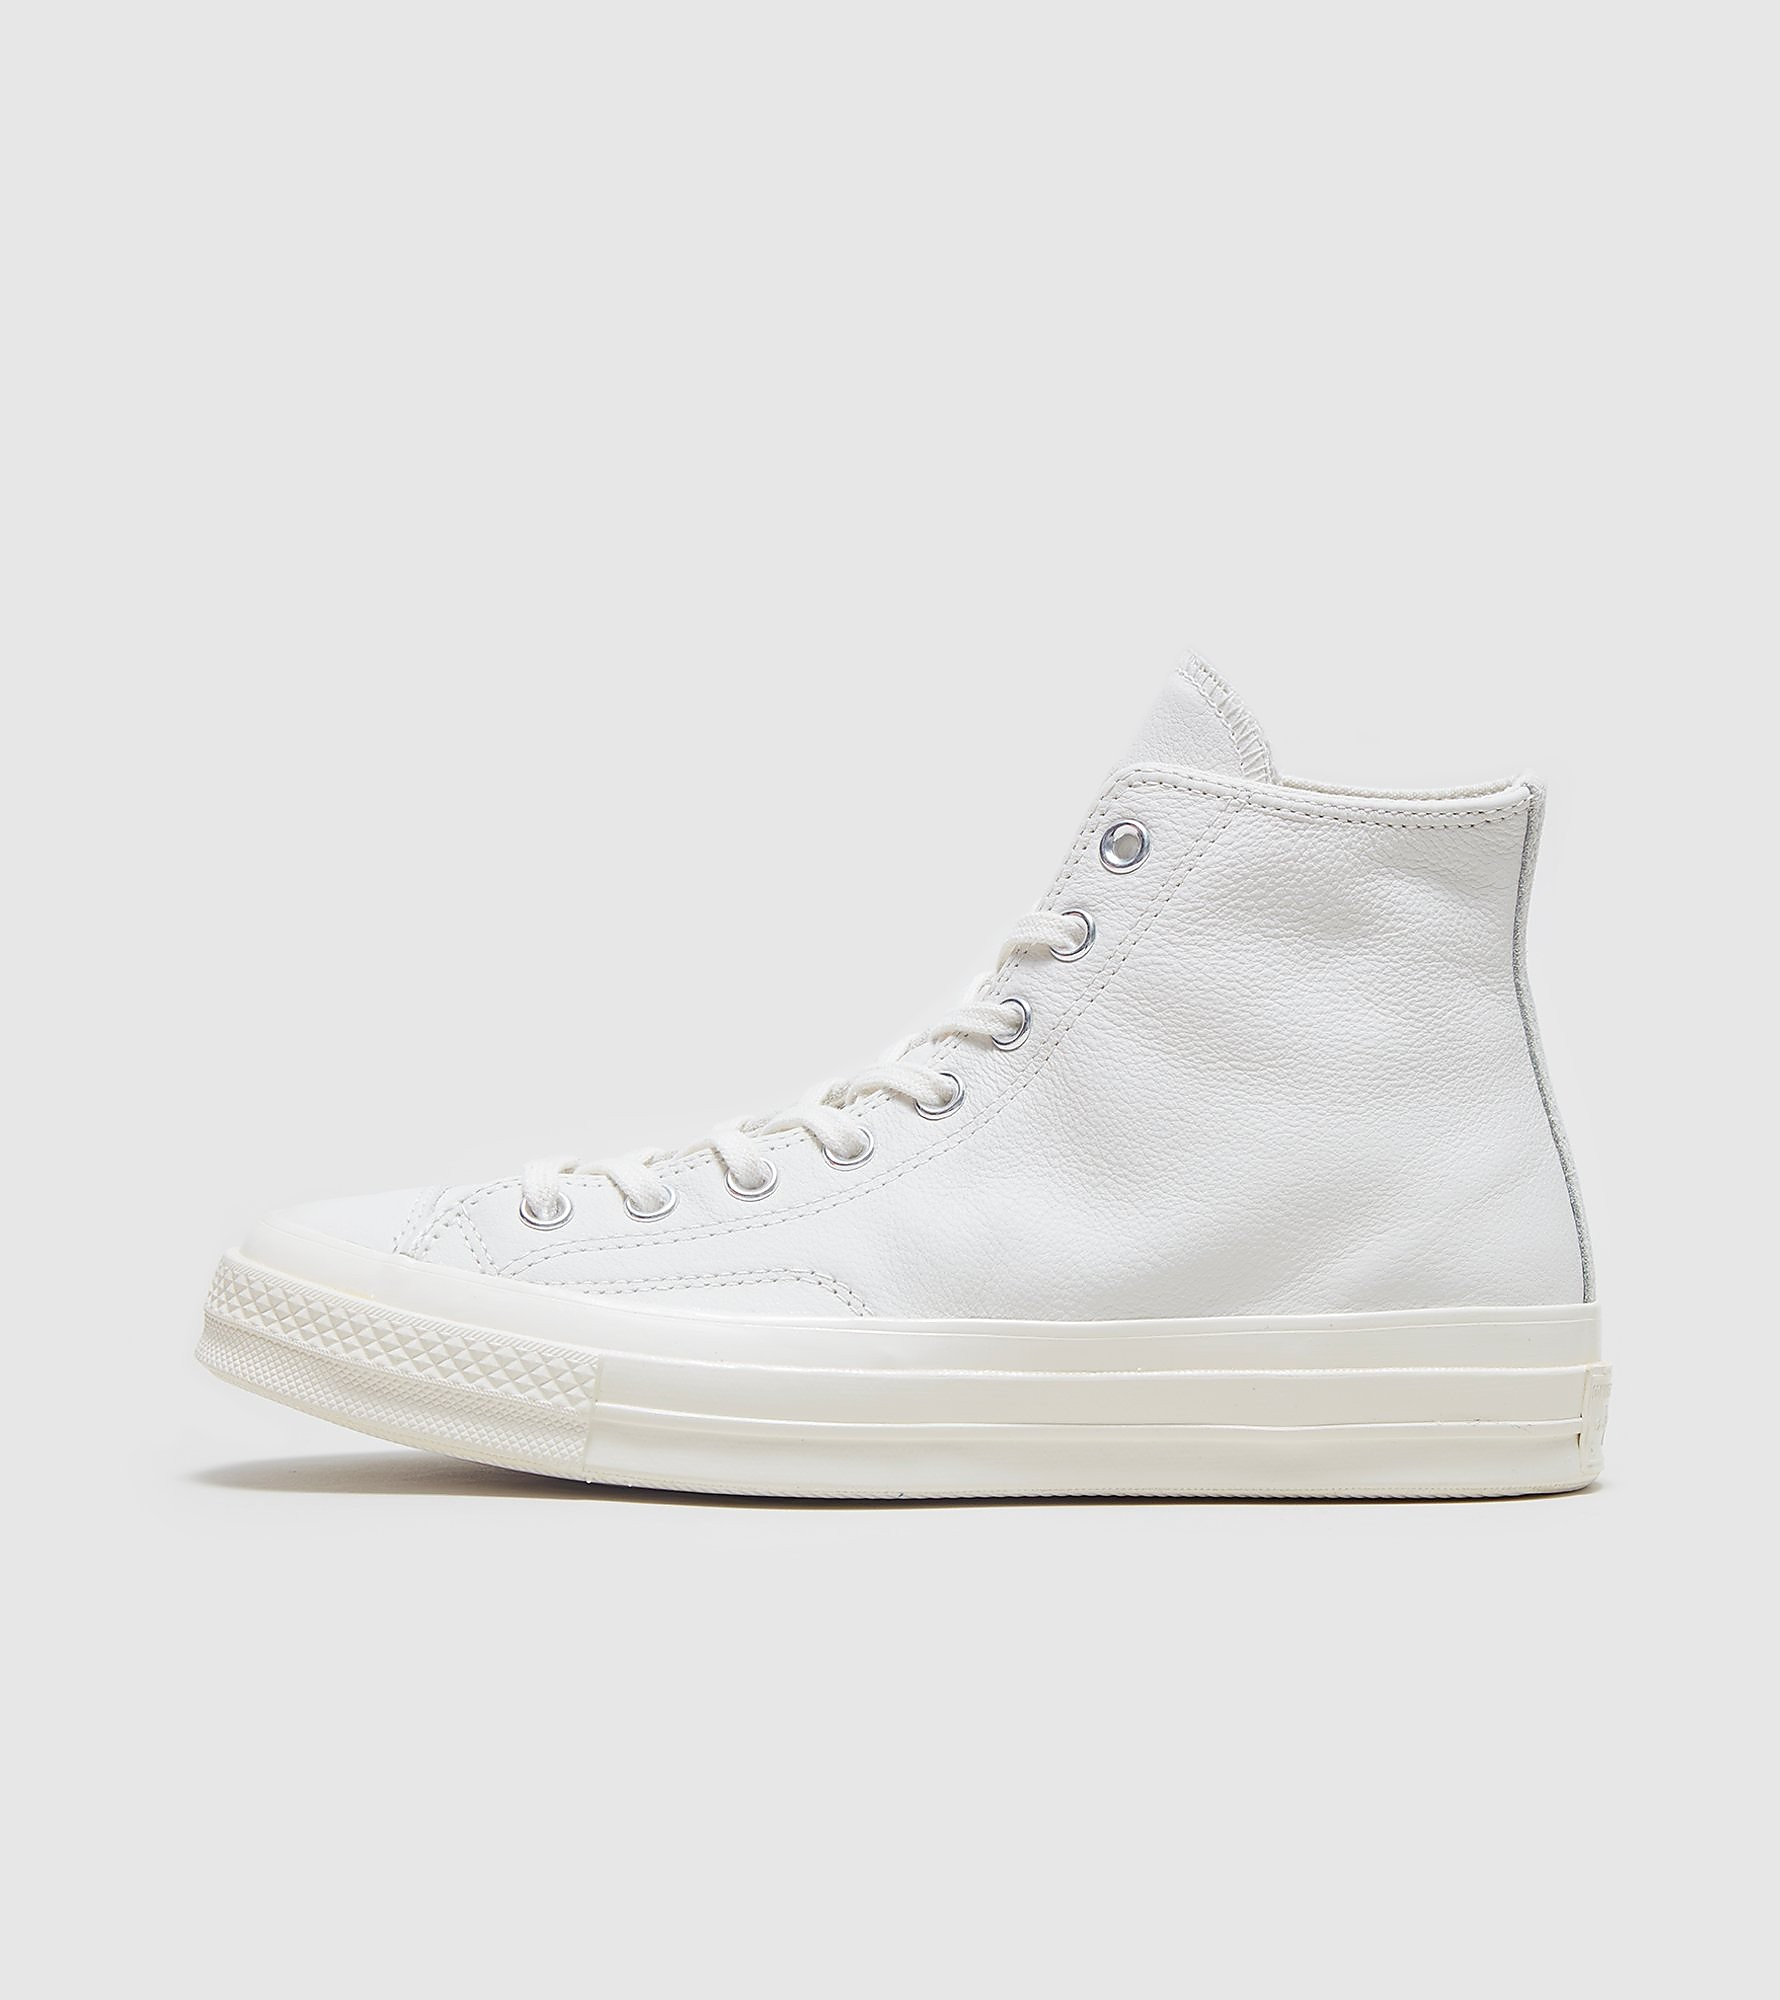 Converse Chuck Taylor All Star Leather Hi '70